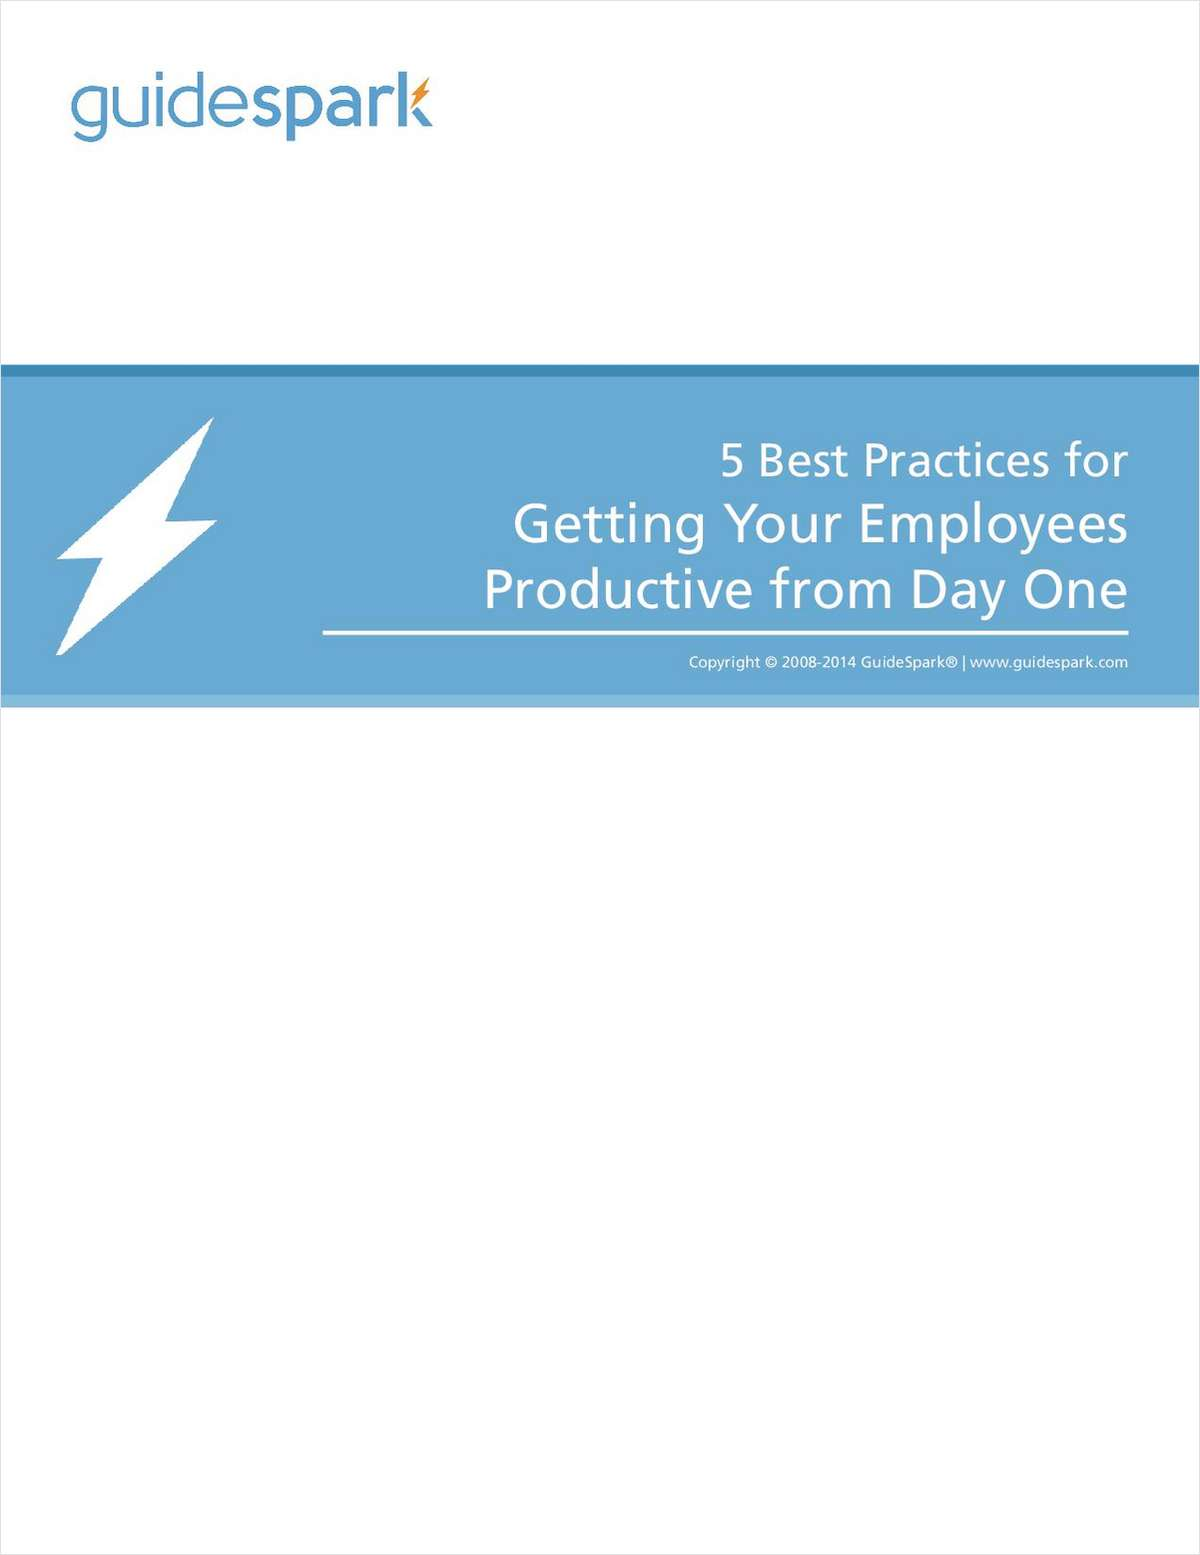 5 Best Practices for Getting Your Employees Productive from Day One